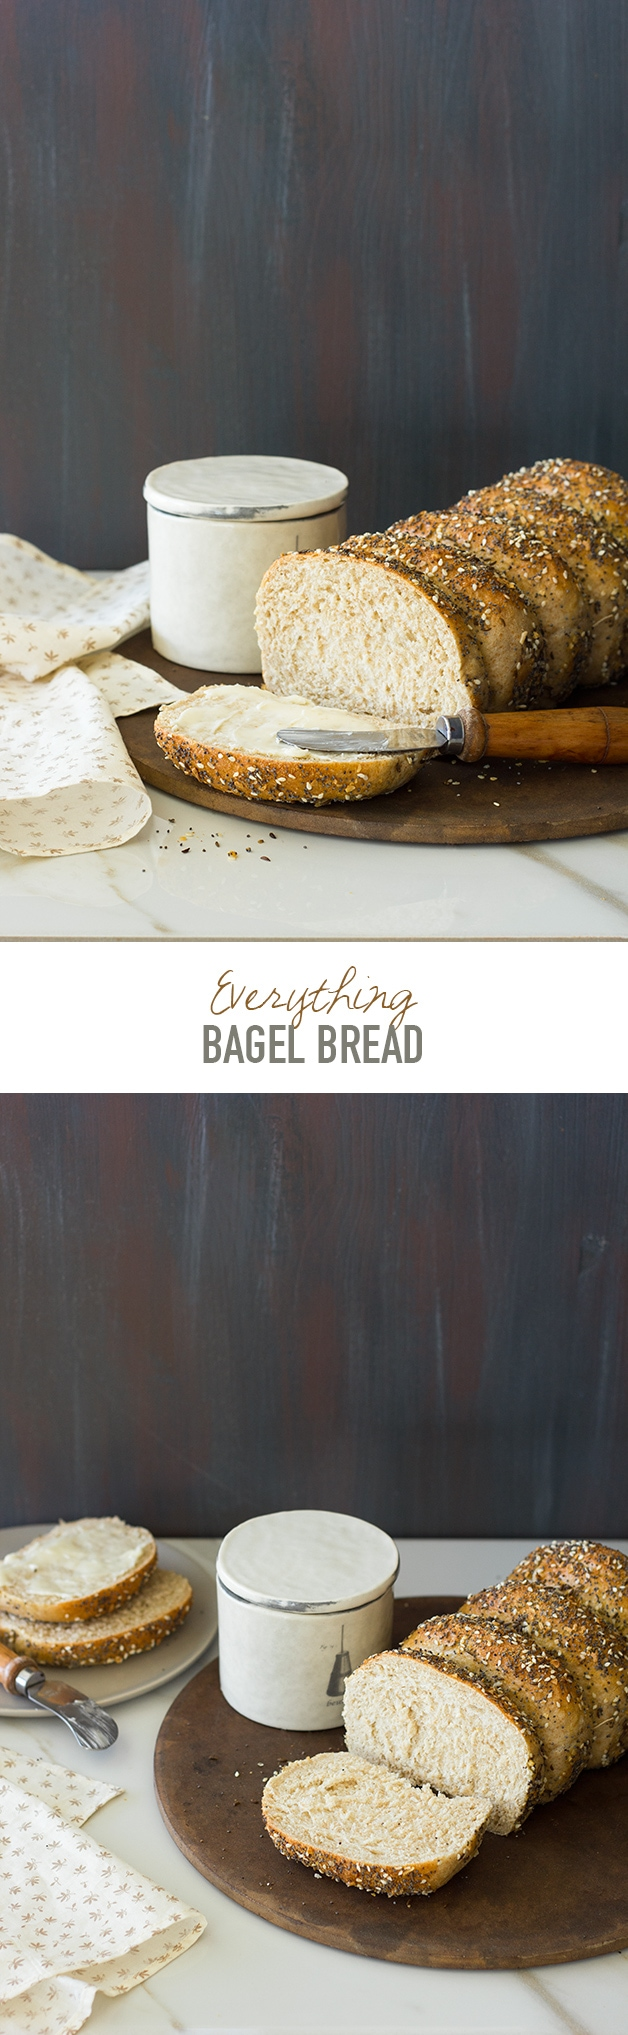 Everything Bagel Bread - Just like a perfectly soft and fluffy Everything Bagel, but in loaf form!   www.brighteyedbaker.com